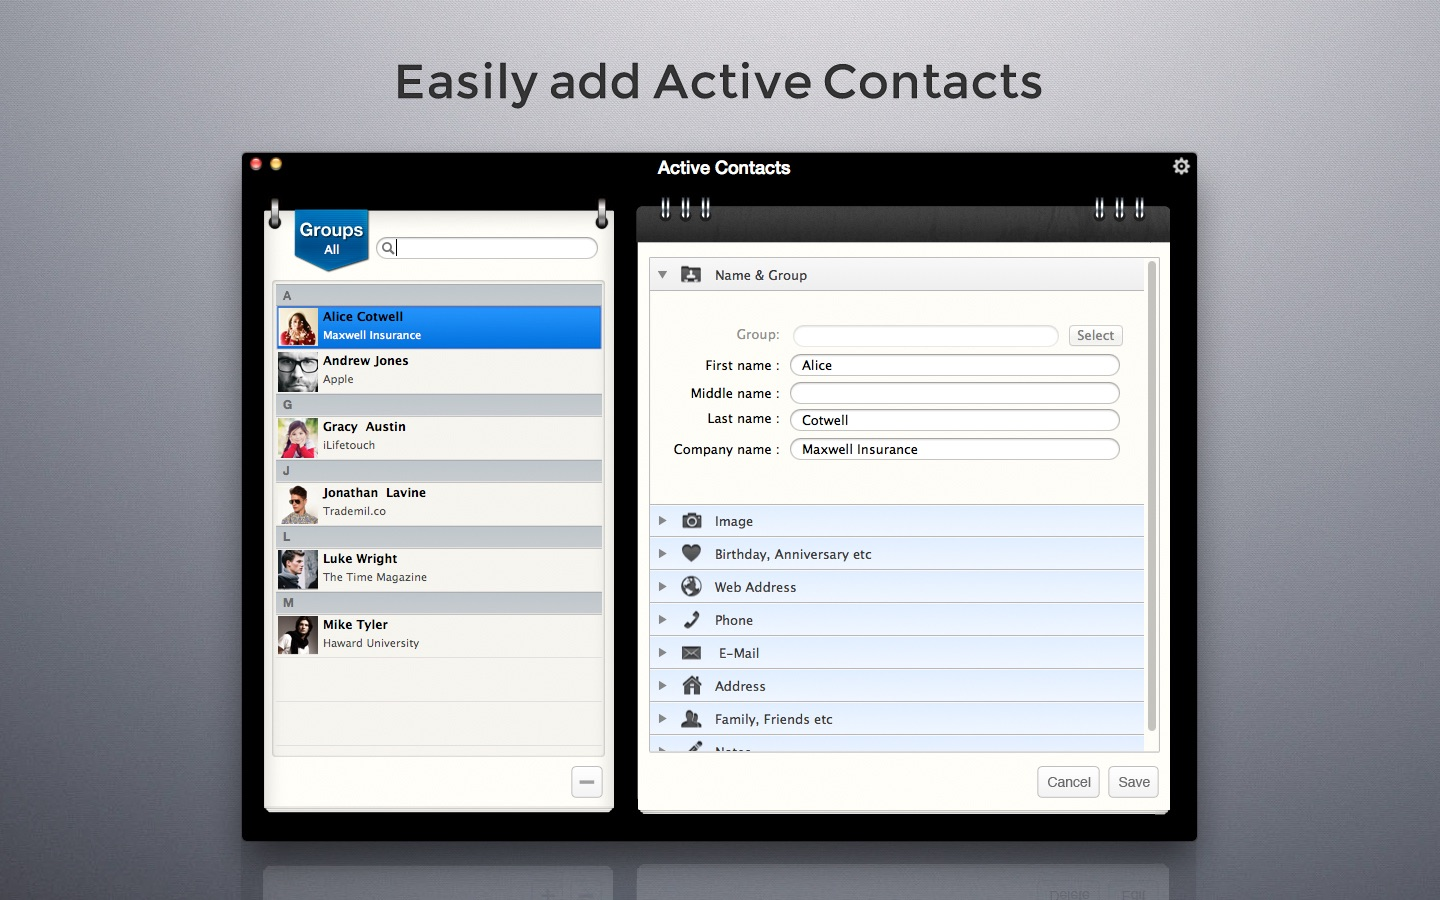 Active Contacts